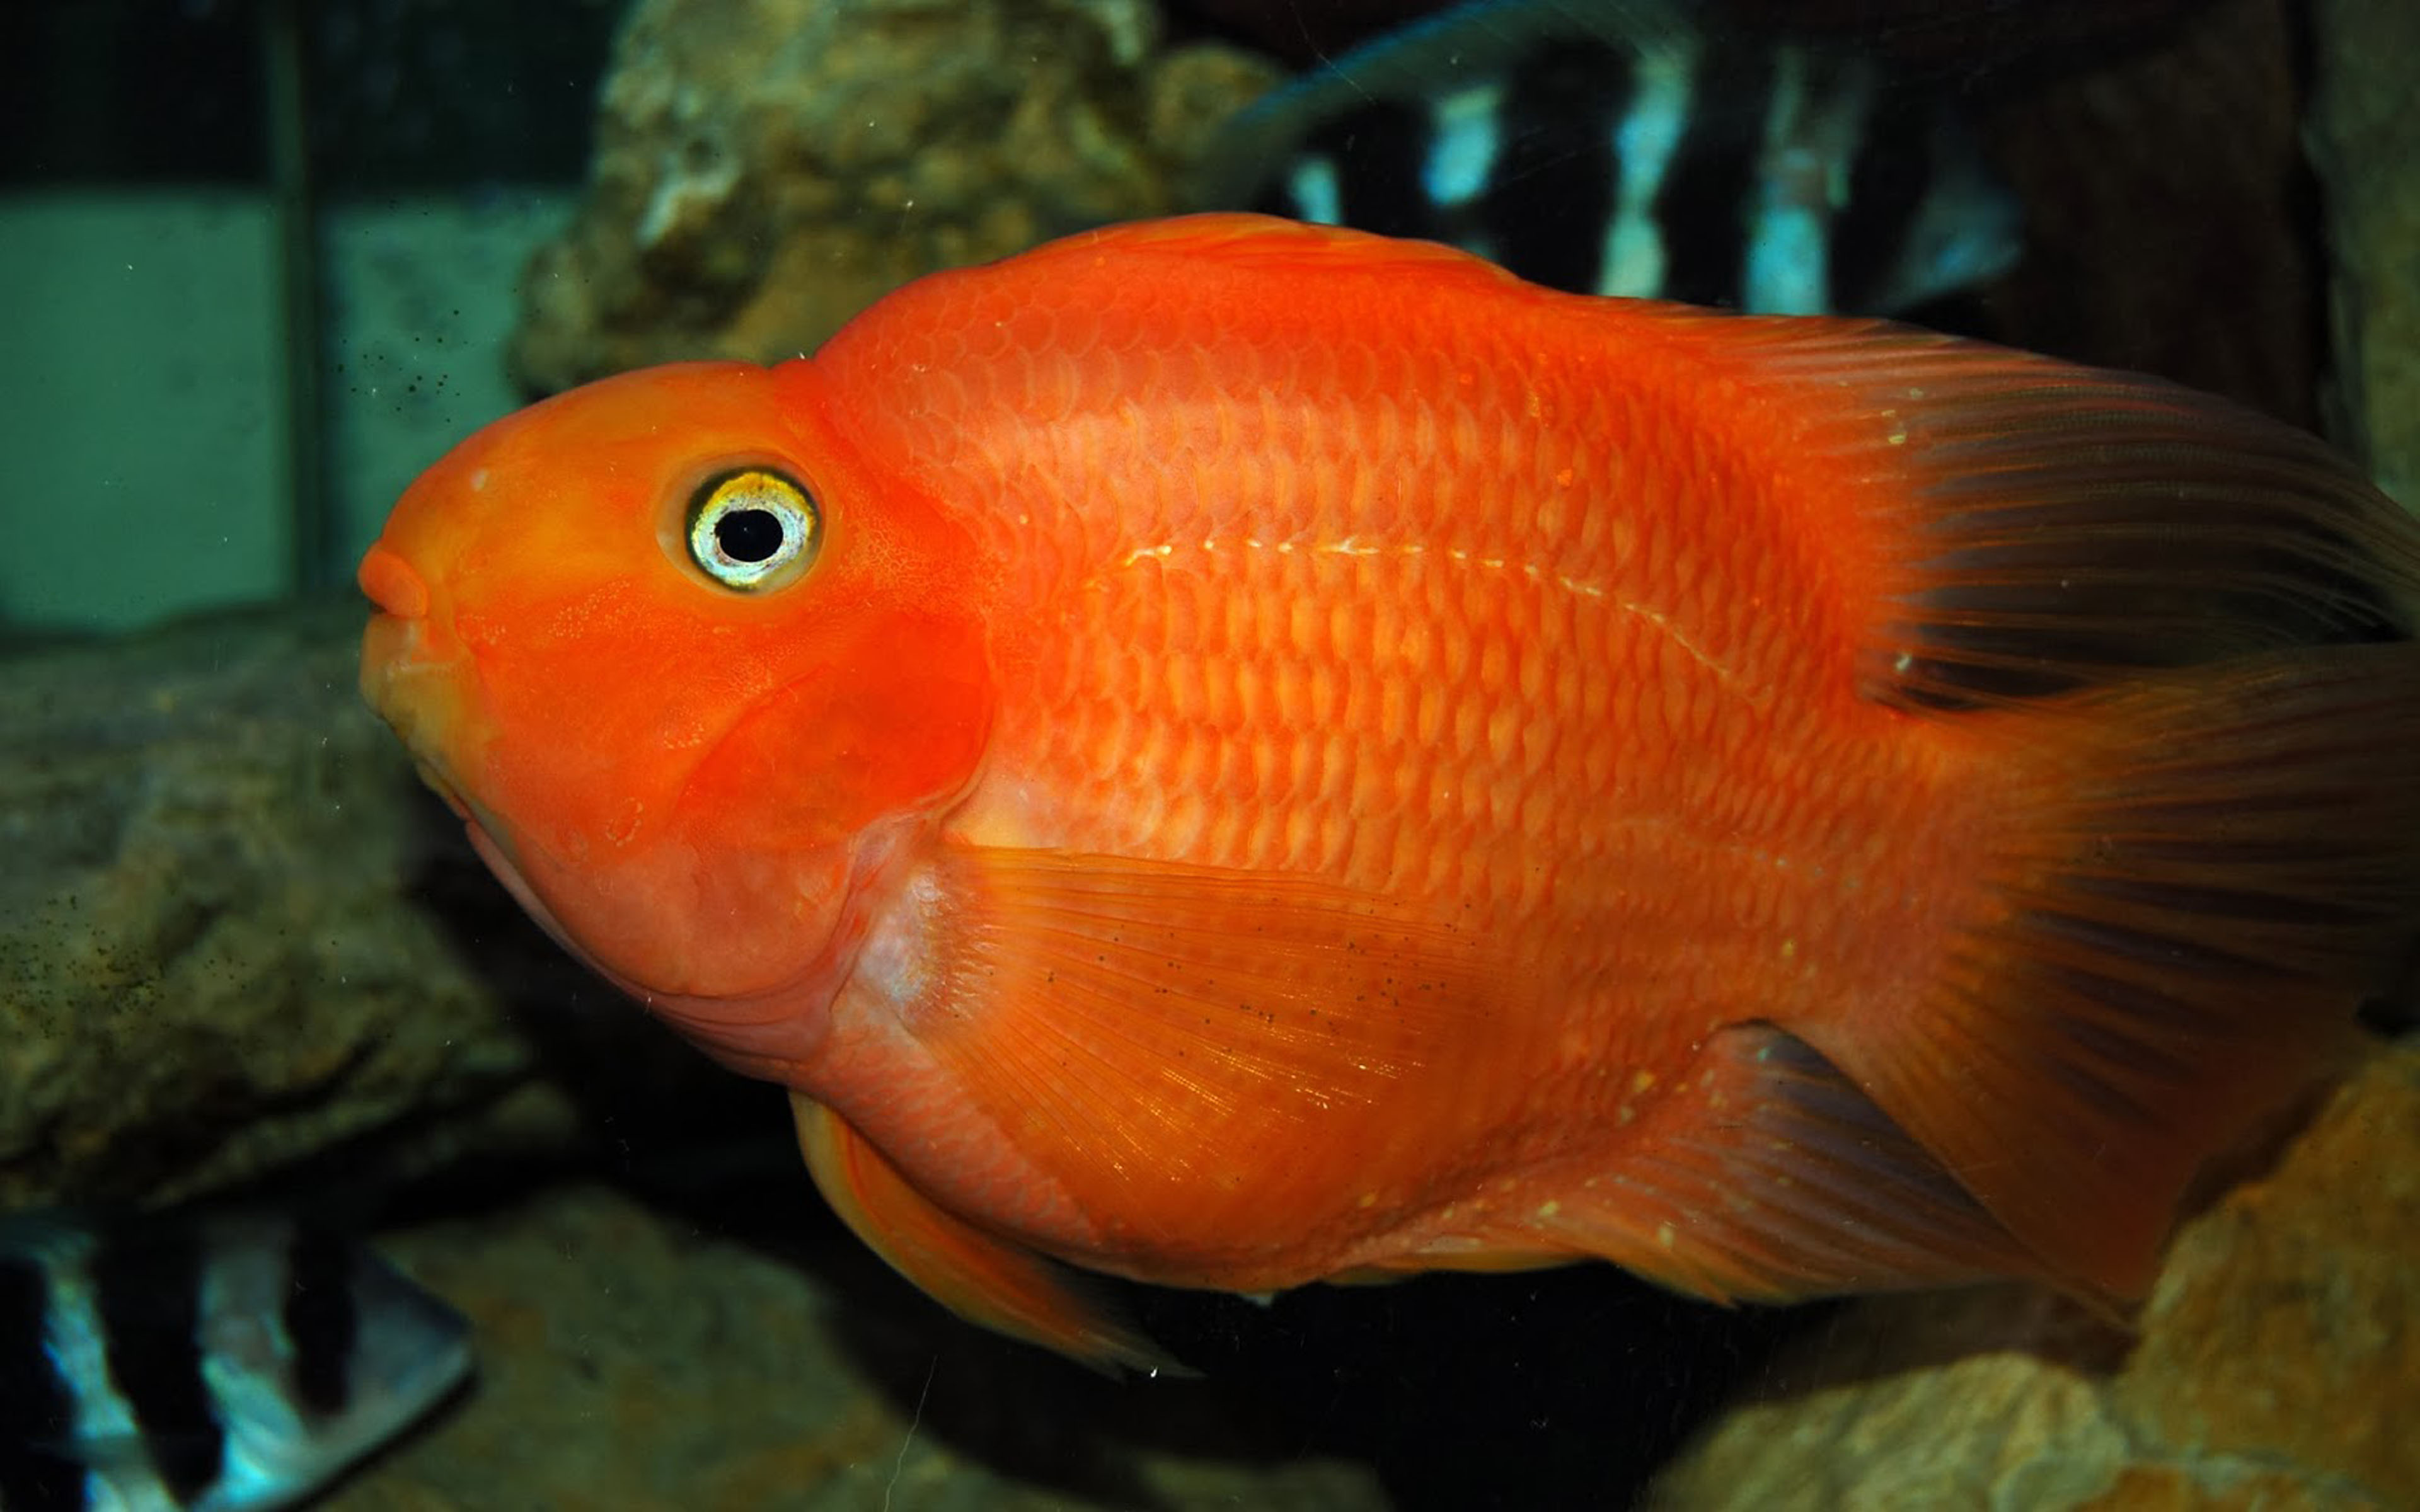 Cute Goldfish Wallpaper Red Ikan Parrot Fish 3840x2400 Wallpapers13 Com